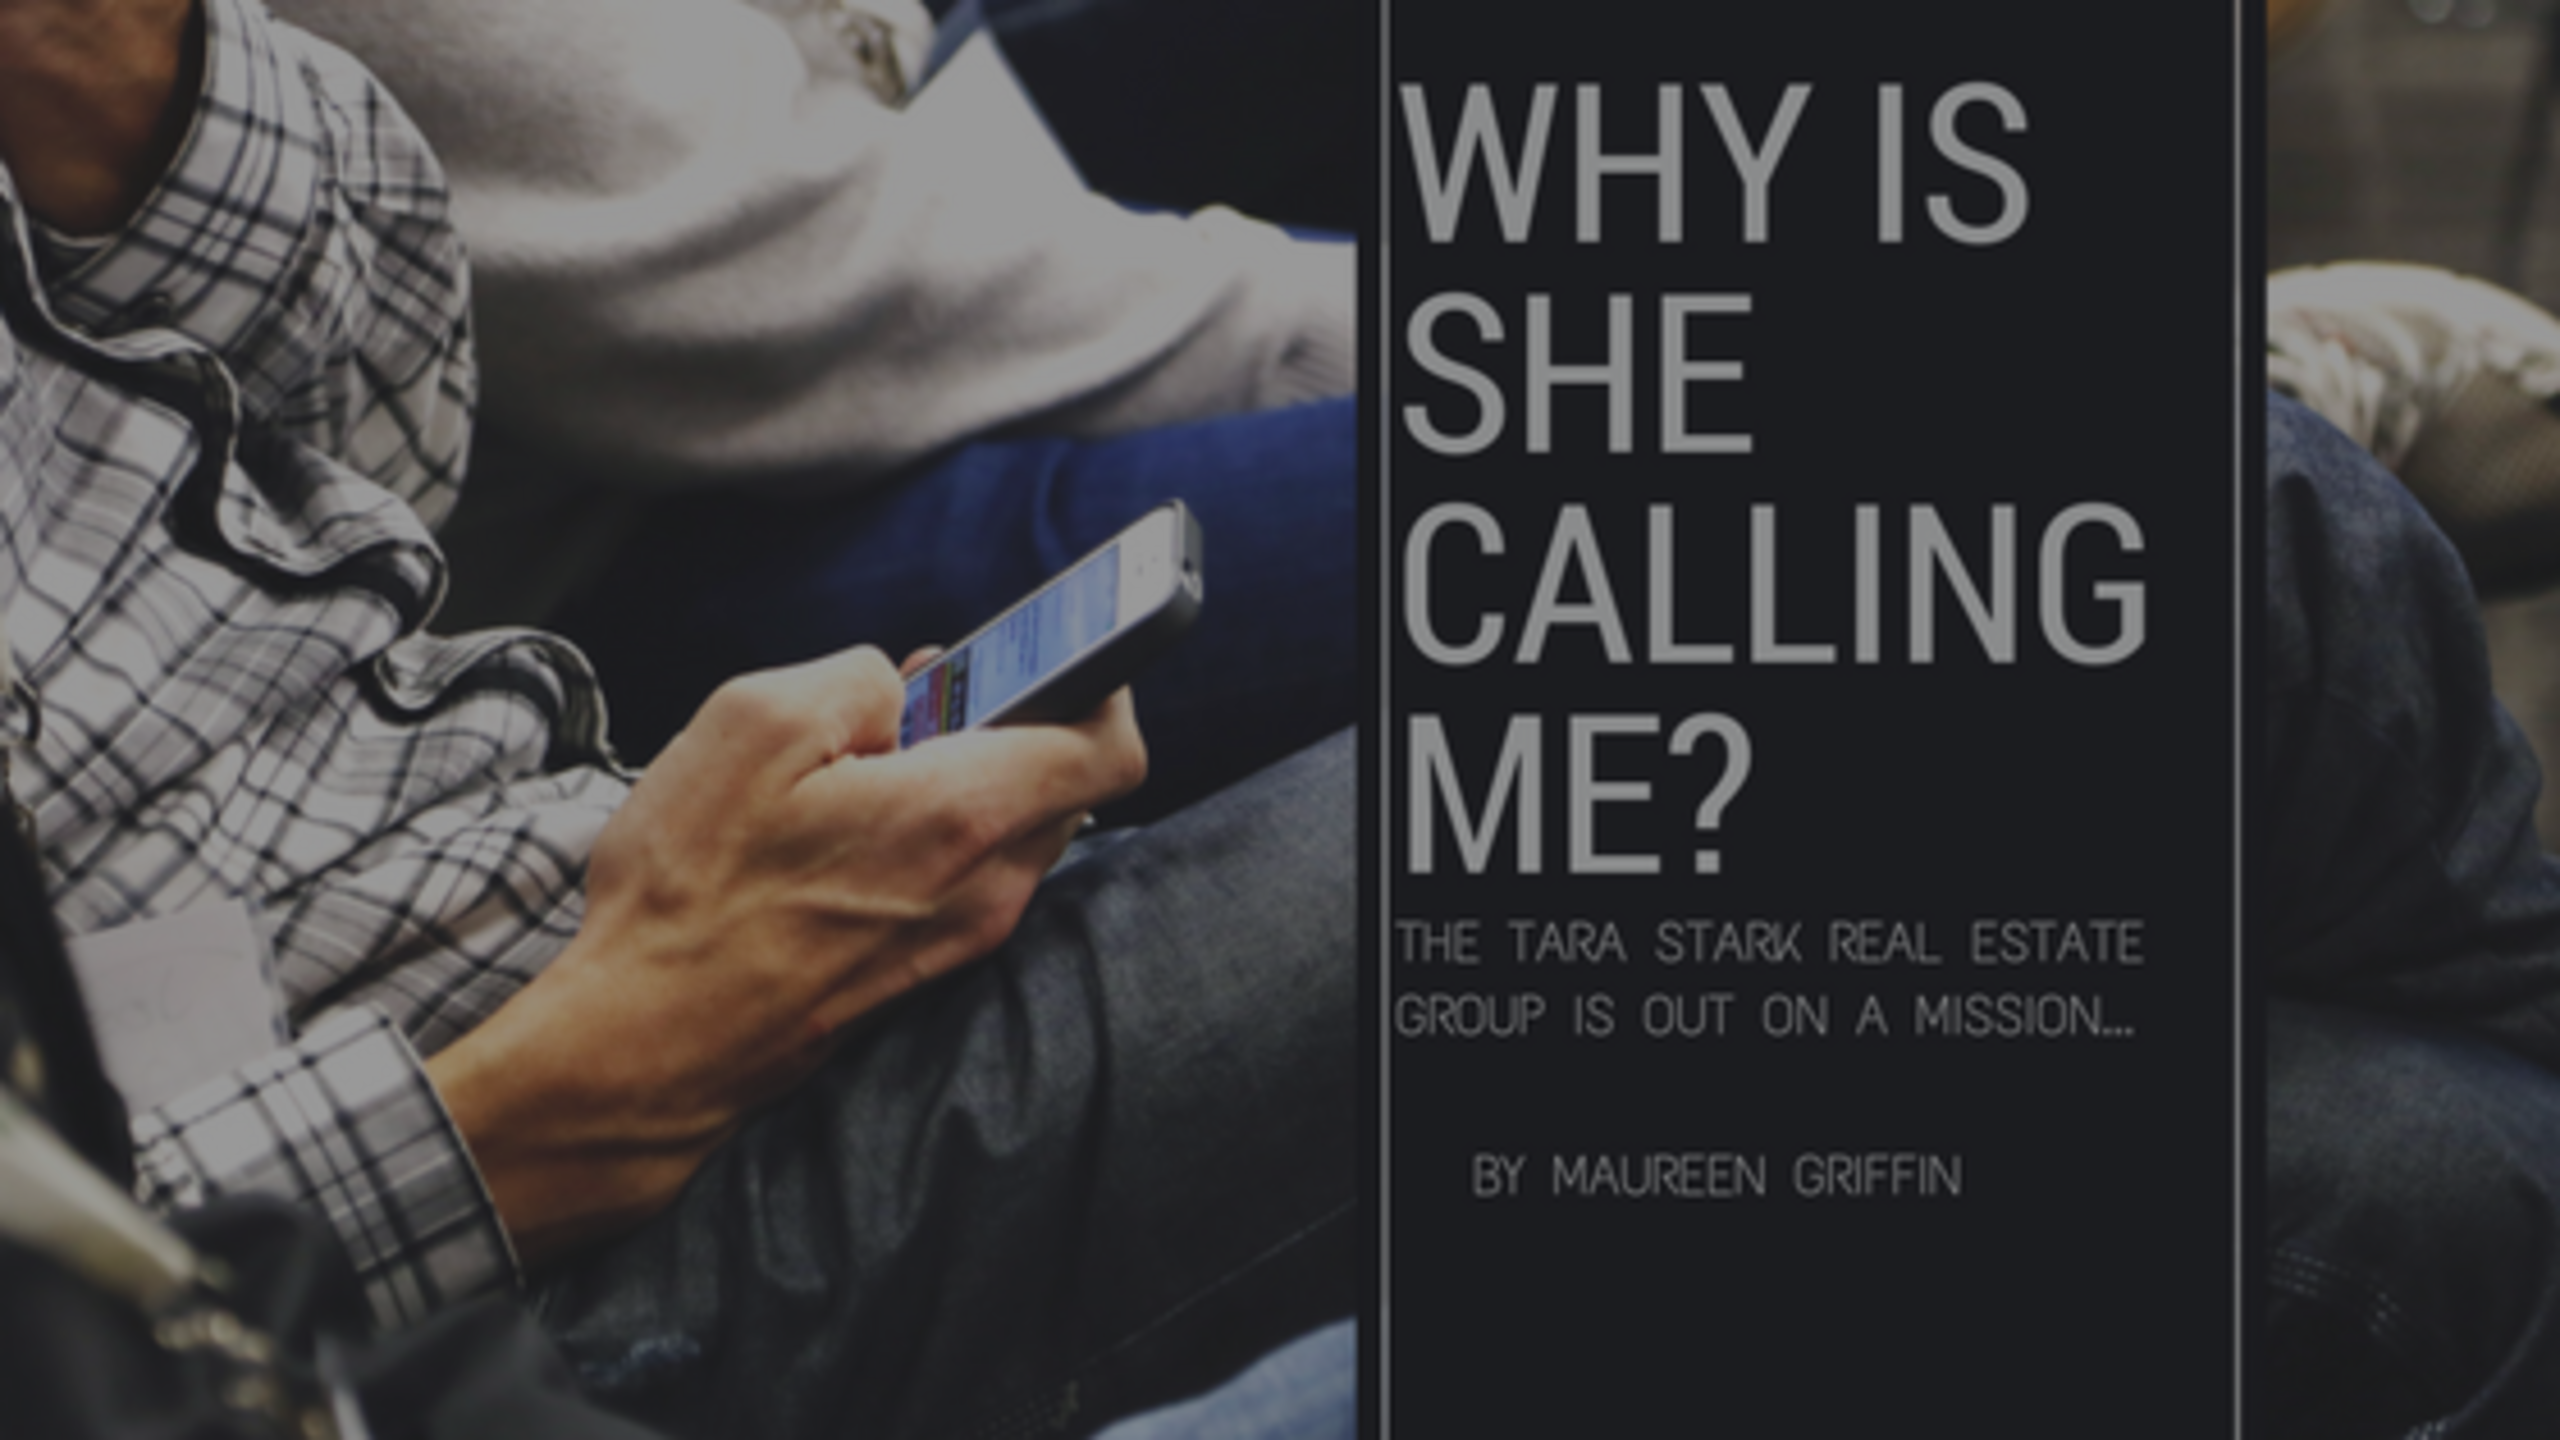 Why is She Calling Me?